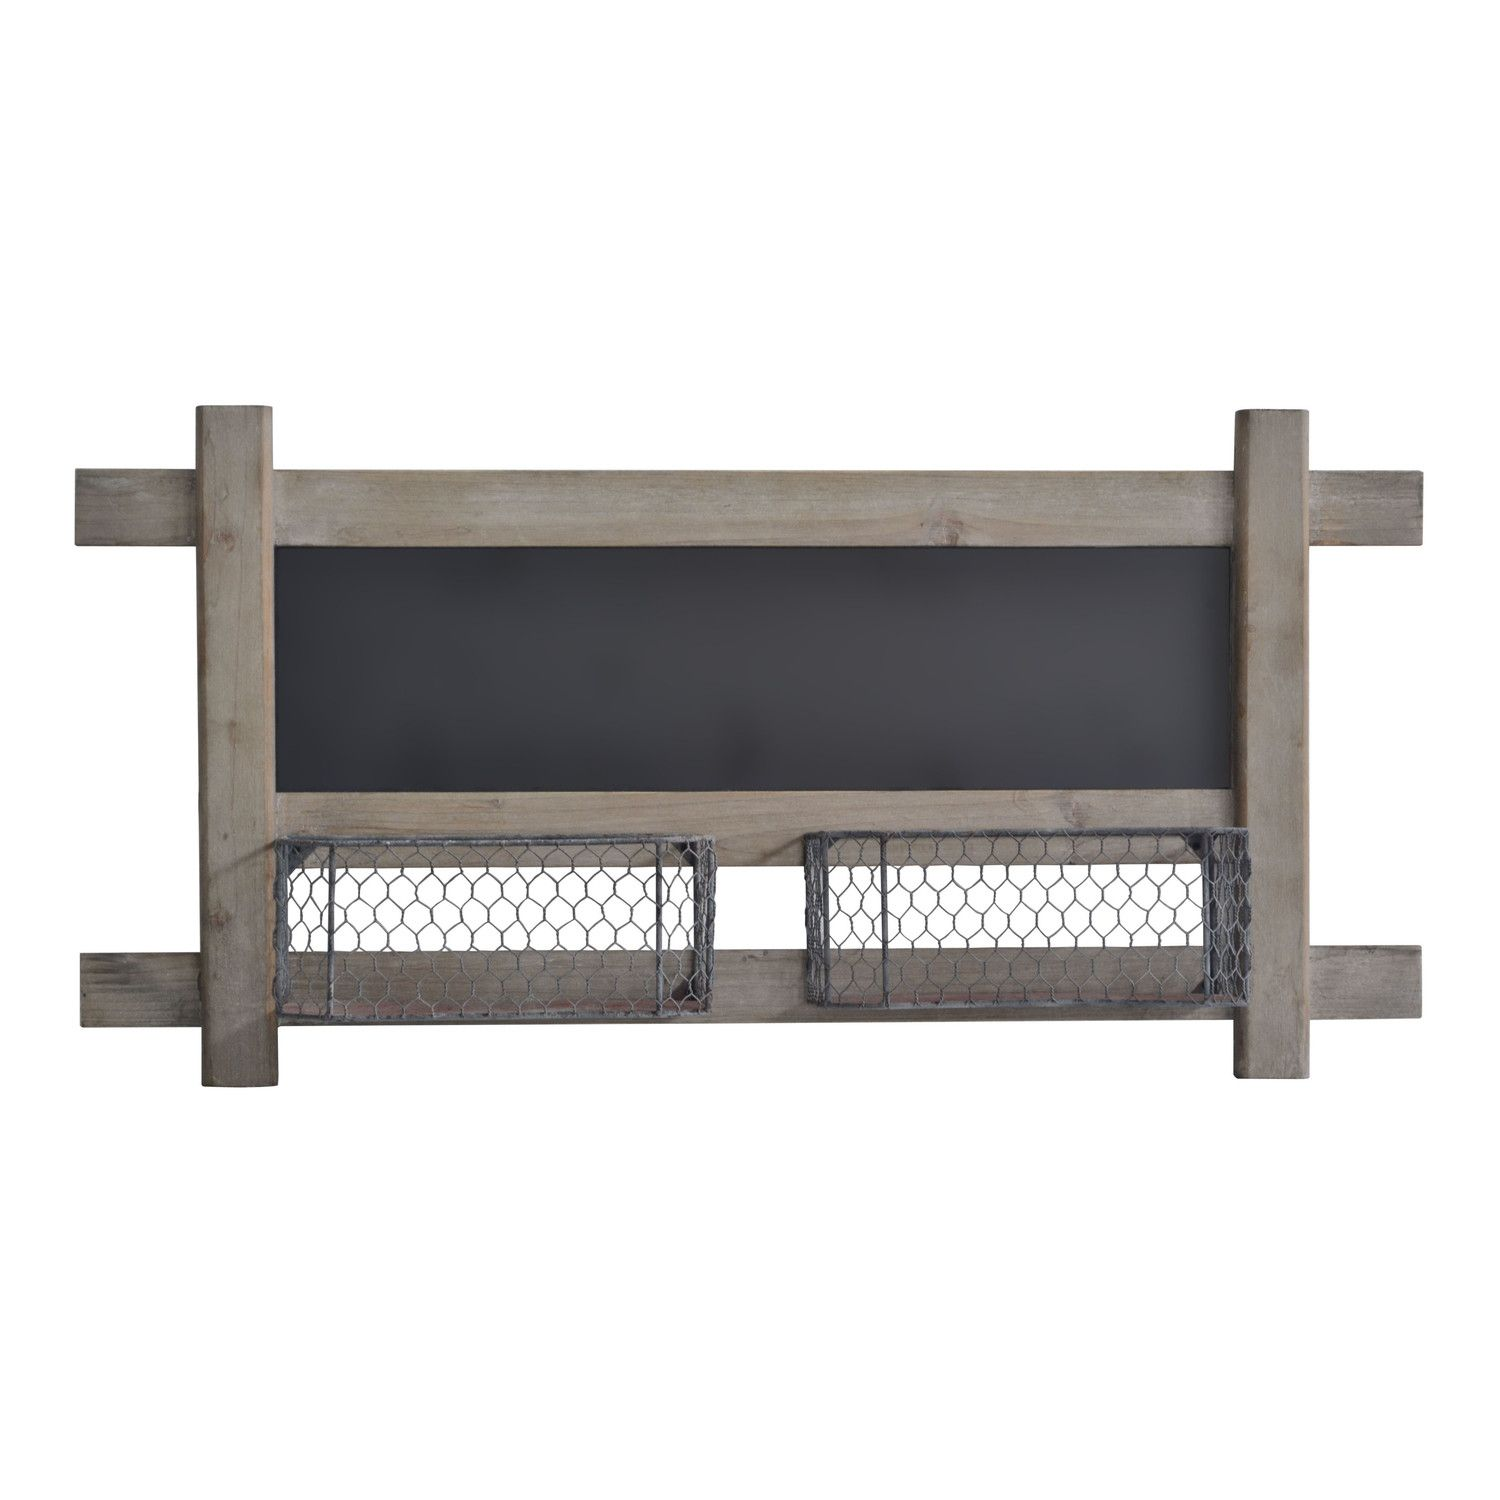 Cheungs Metal Wall Chalkboard with 2 Wire Baskets | For the Home ...